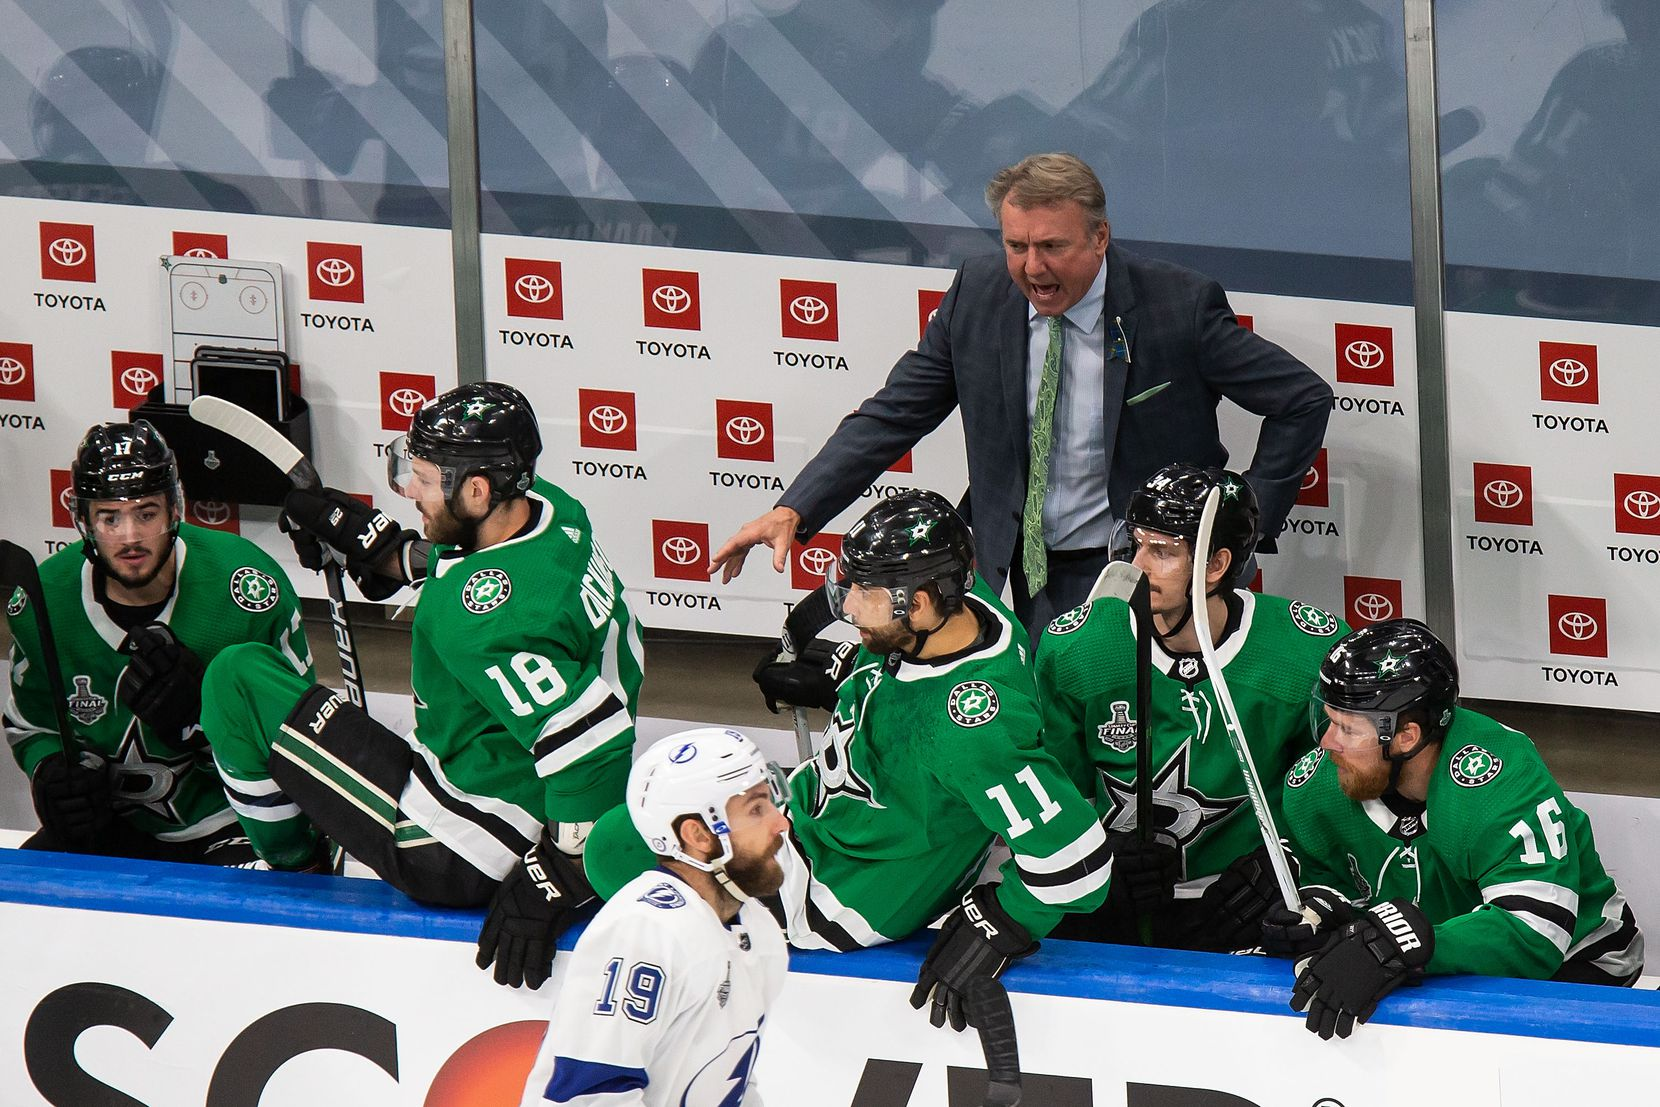 Interim head coach Rick Bowness of the Dallas Stars on the bench during Game Three of the Stanley Cup Final against the Tampa Bay Lightning at Rogers Place in Edmonton, Alberta, Canada on Wednesday, September 23, 2020. (Codie McLachlan/Special Contributor)